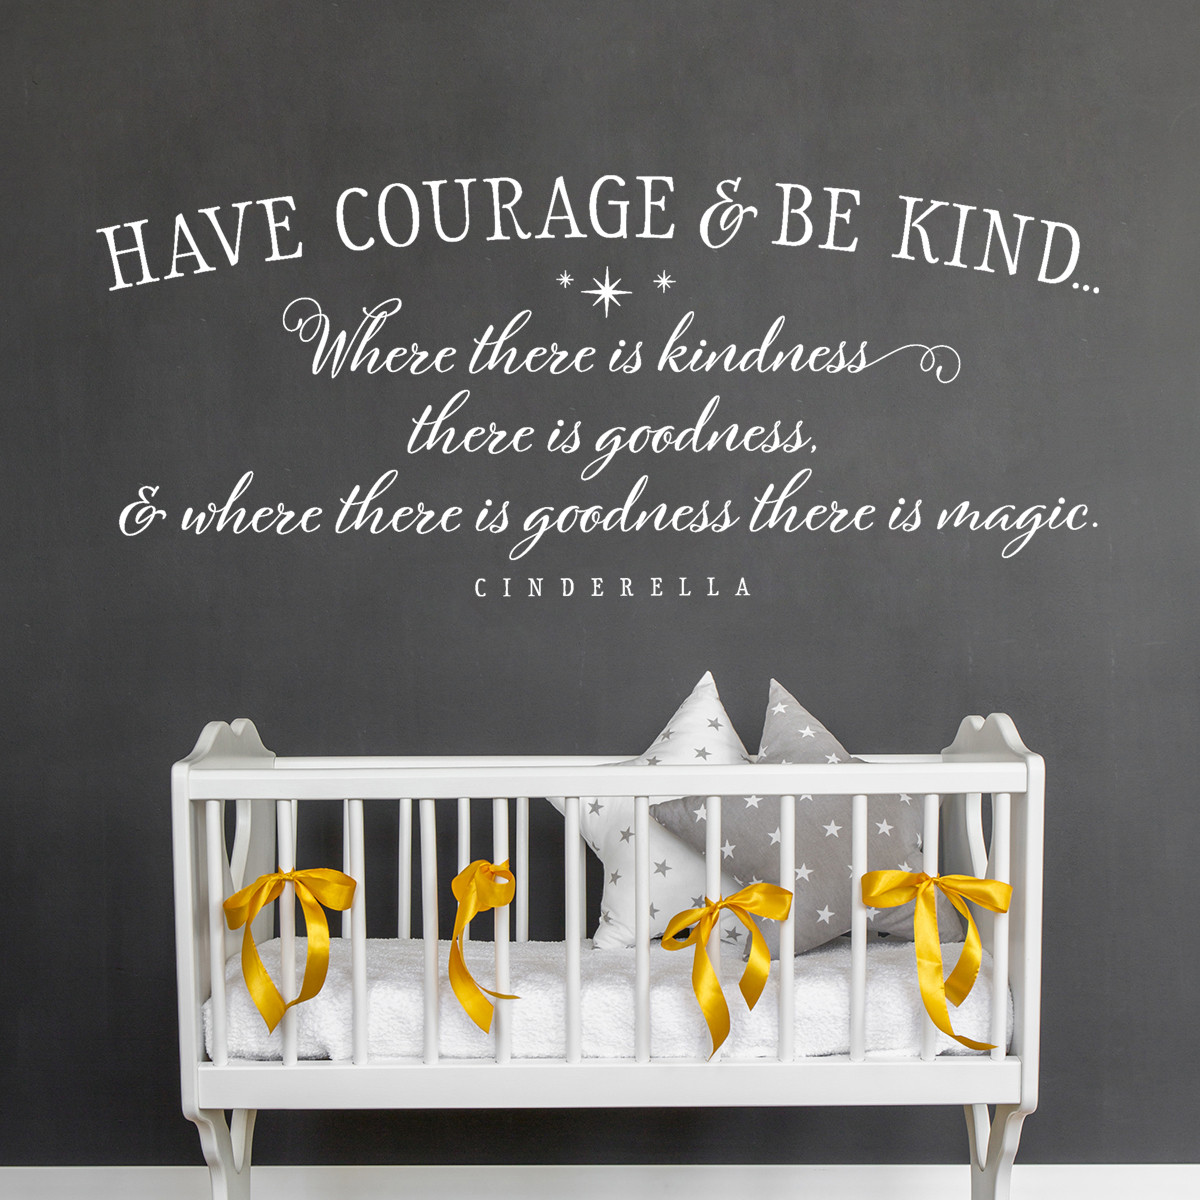 Have courage and be kind - Cinderella quotes - Kids wall decal